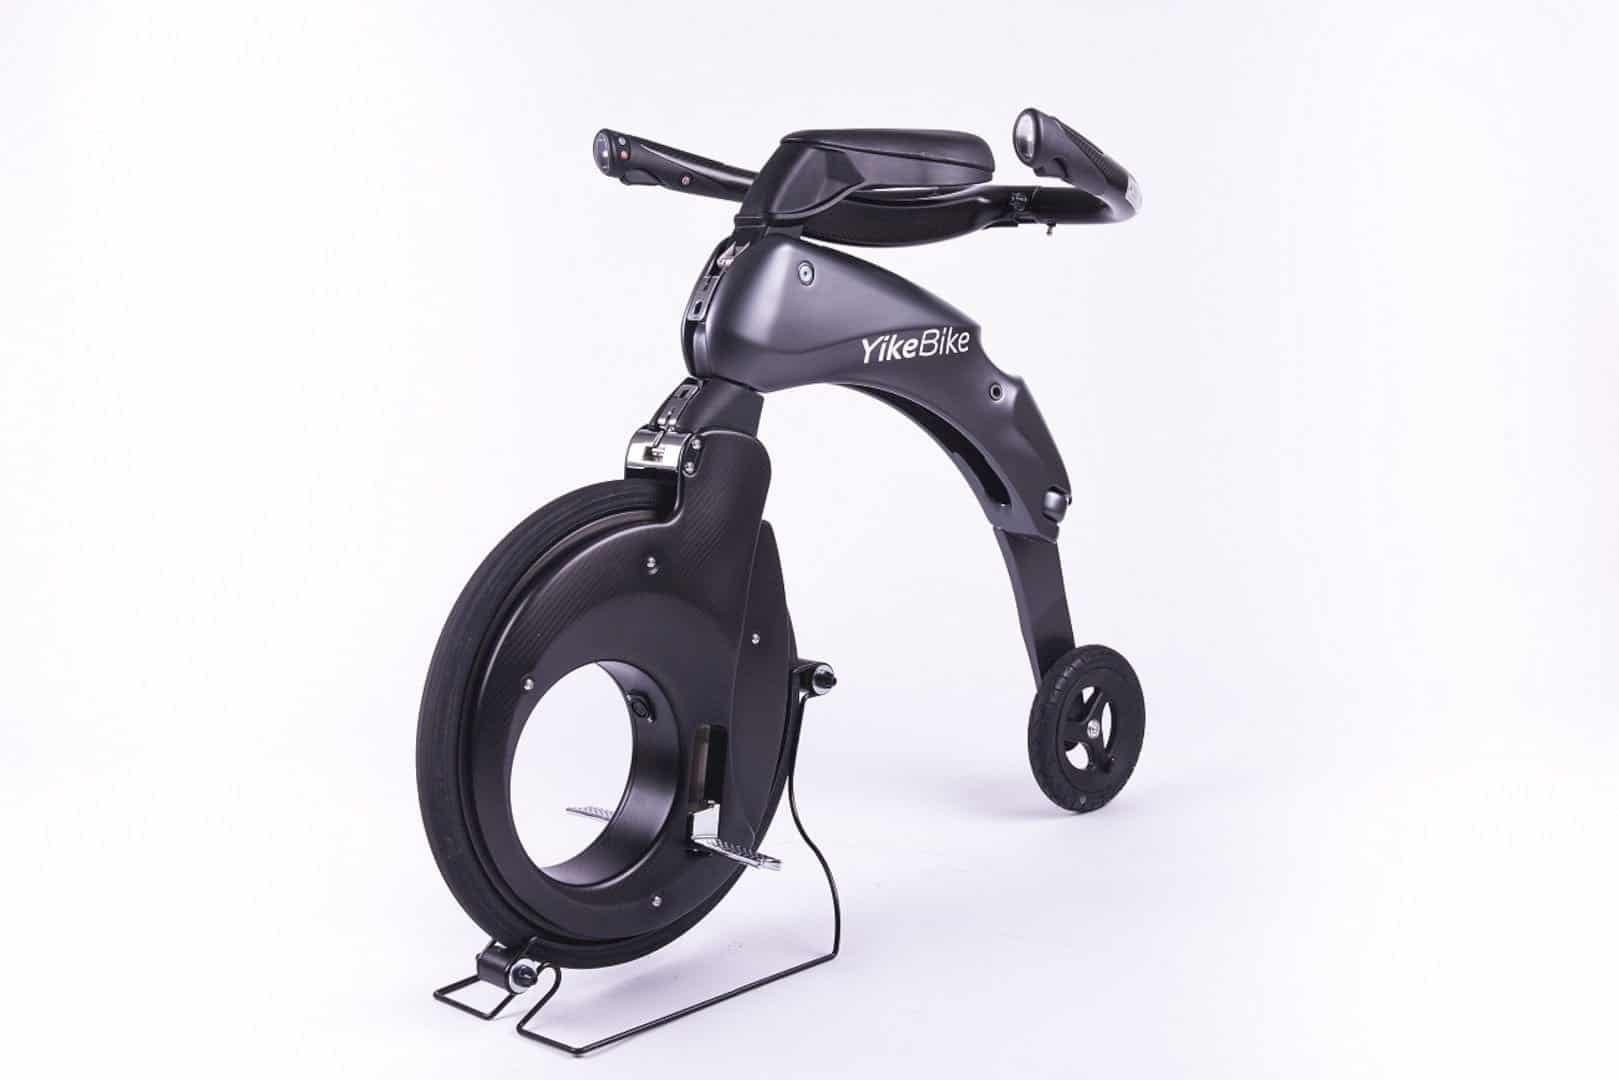 YikeBike – The Award Winning Fully Electric Folding Bike